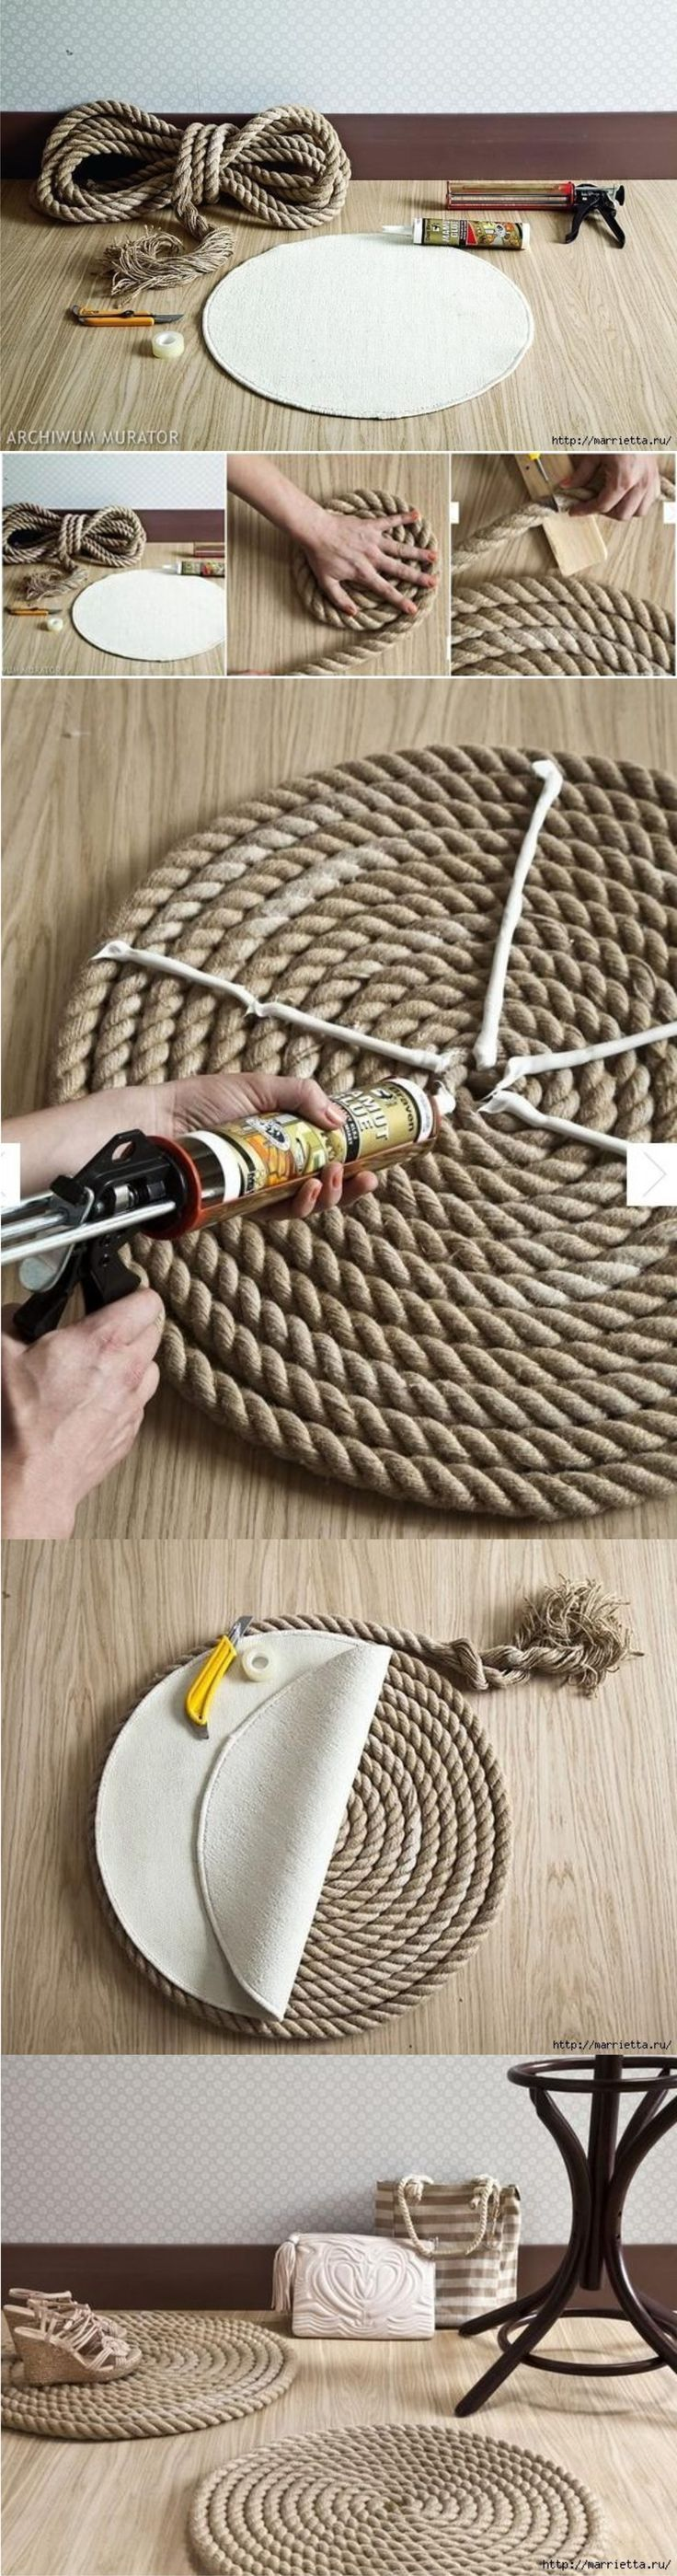 A #DIY rope rug that's held together with glue makes for an easy-breezy approach to nautical decor.